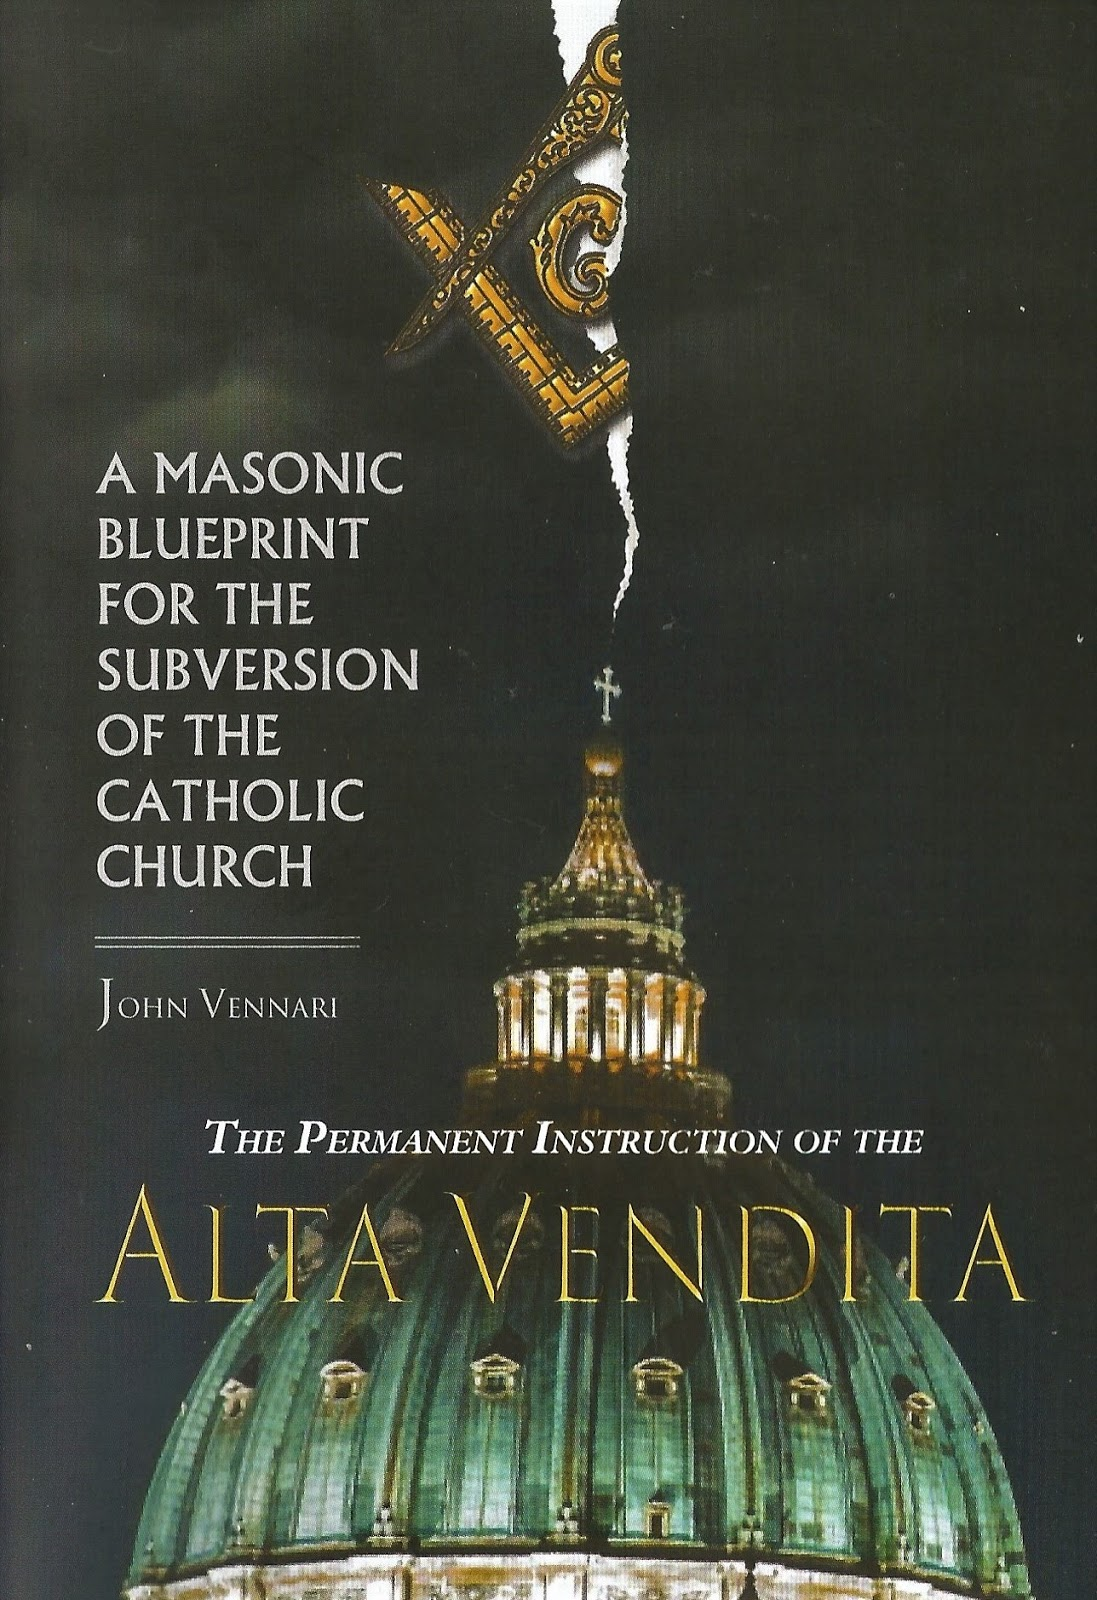 Walt whitemans world book review alta vendita the masonic plot has just published a second edition of the permanent instruction of the alta vendita a masonic blueprint for the subversion of the catholic church malvernweather Choice Image